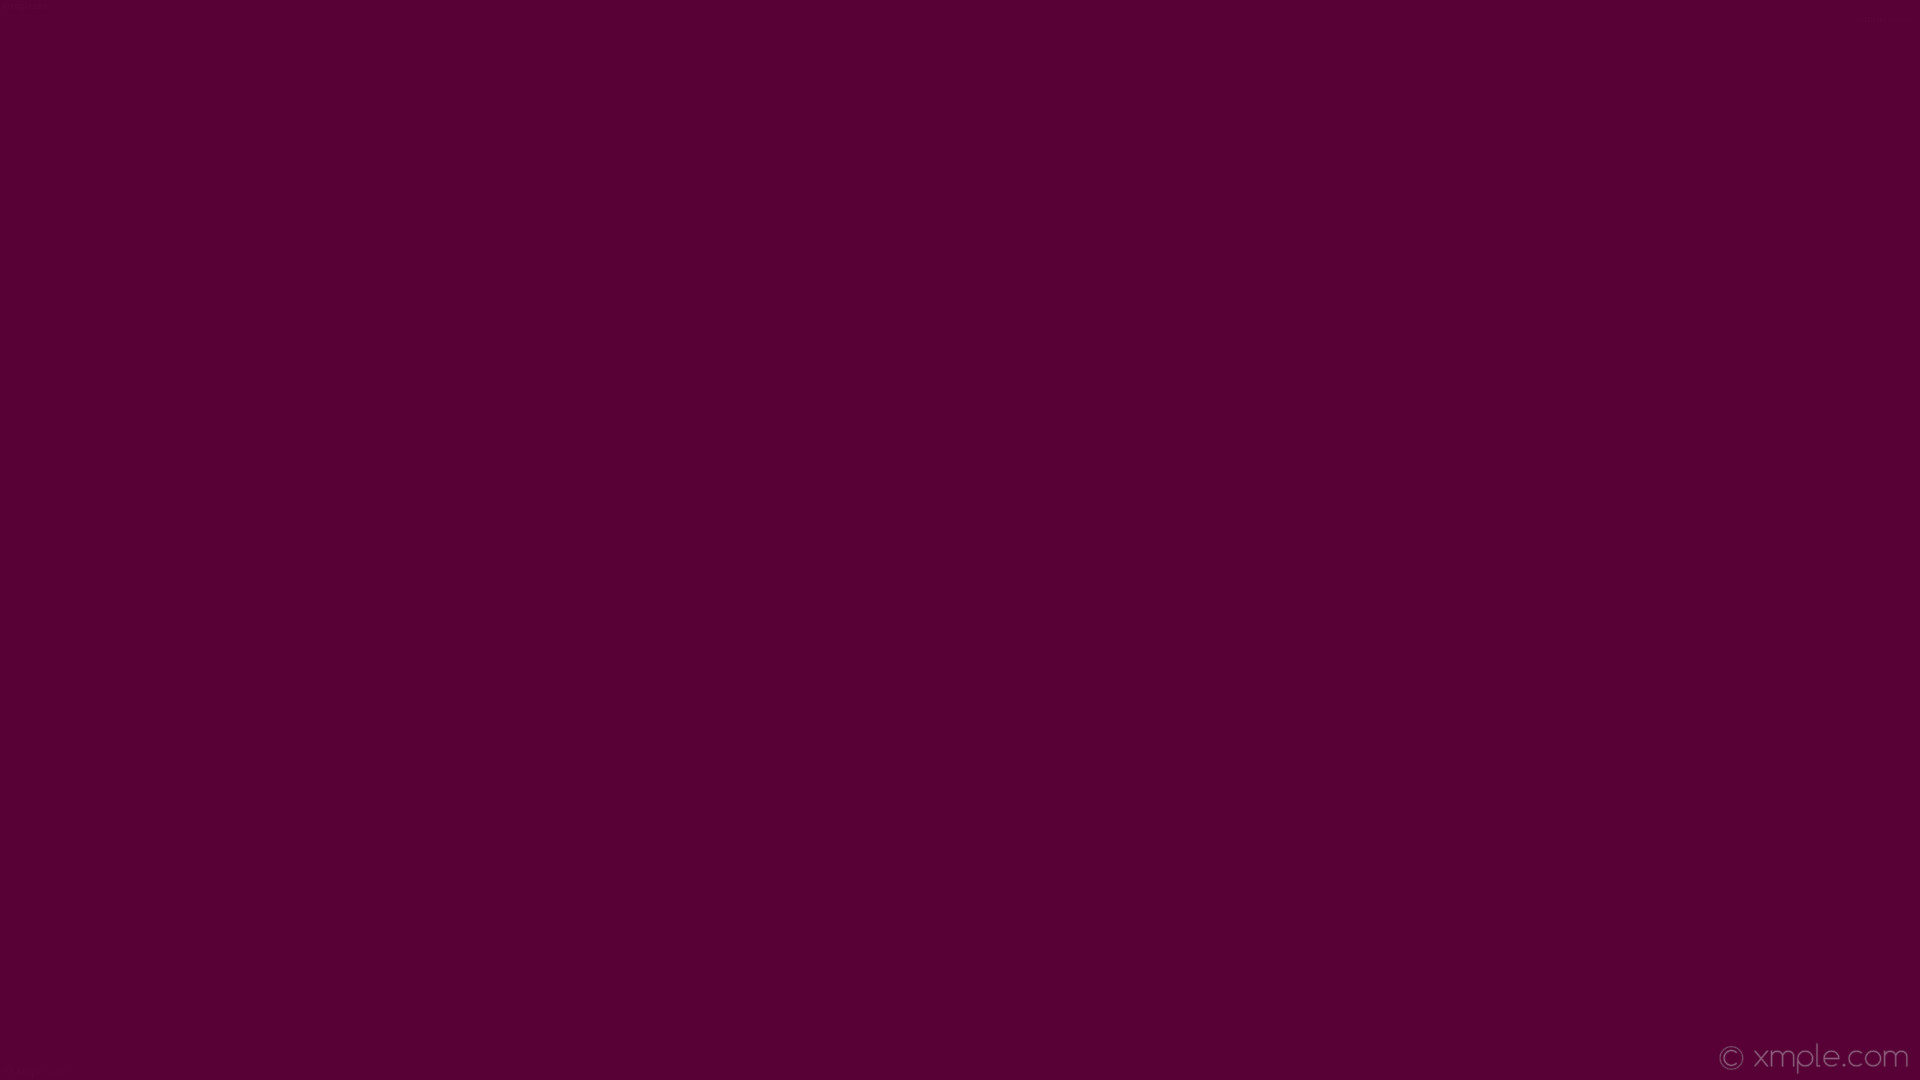 wallpaper solid color plain pink one colour single dark pink #580137